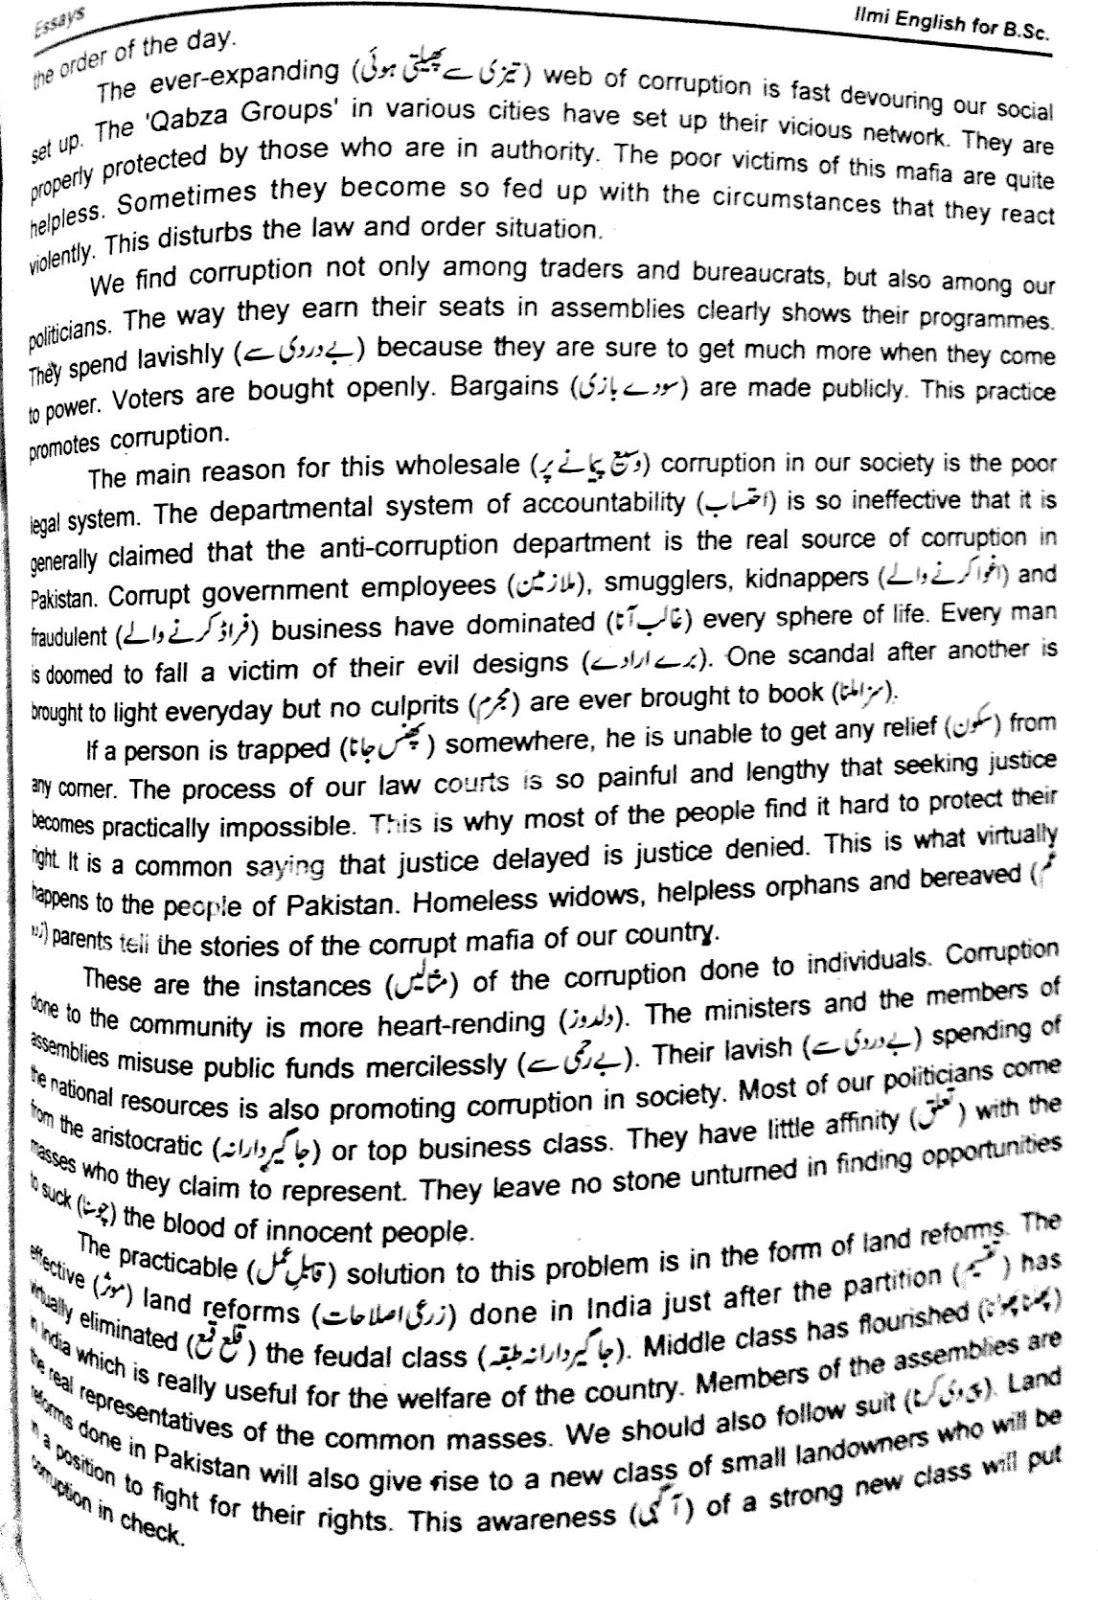 corruption essay for students Recent posts anti corruption essays students international, i need someone to edit my thesis, german homework help posted on april 1, 2018 by don't judge but the kingdom hearts.